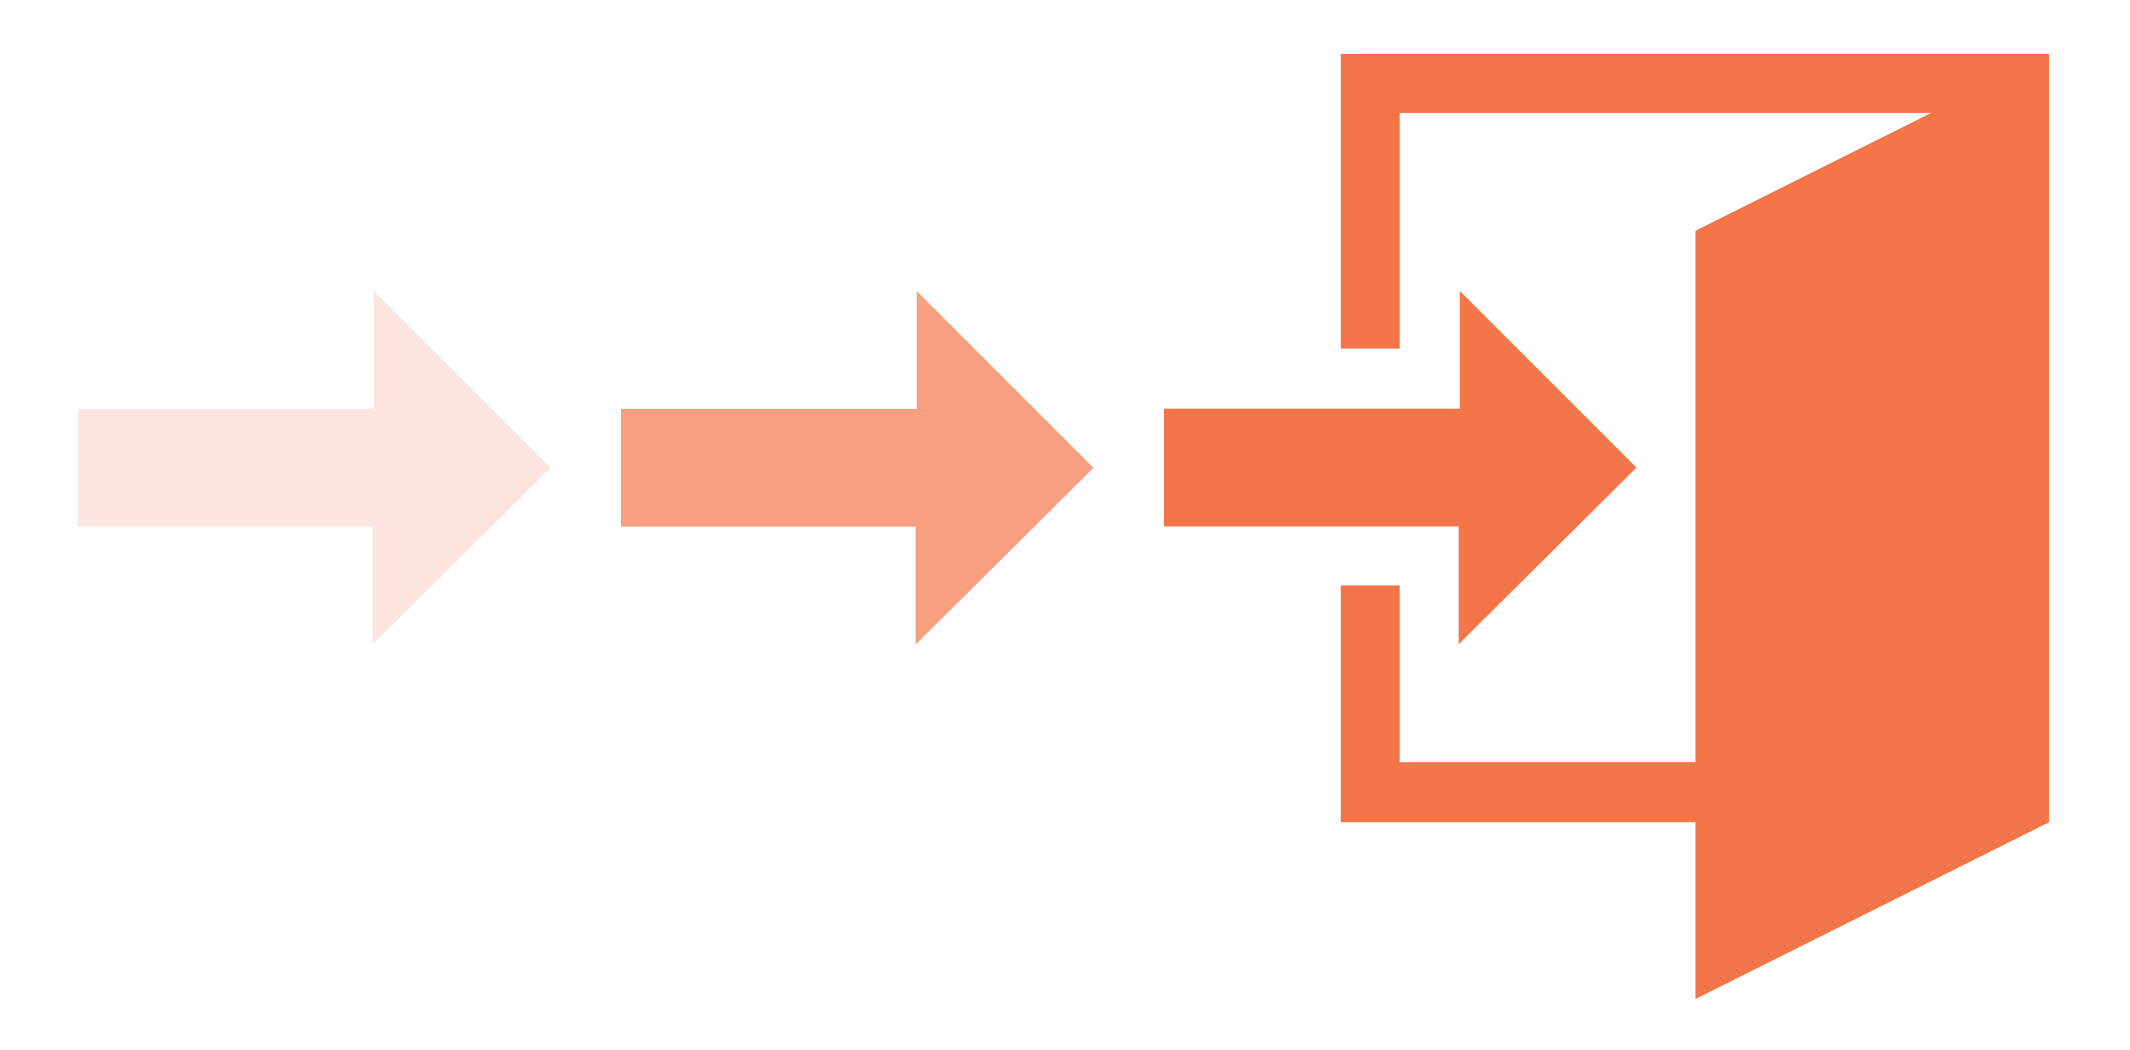 Image of arrows pointing towards an open door, to denote an exit